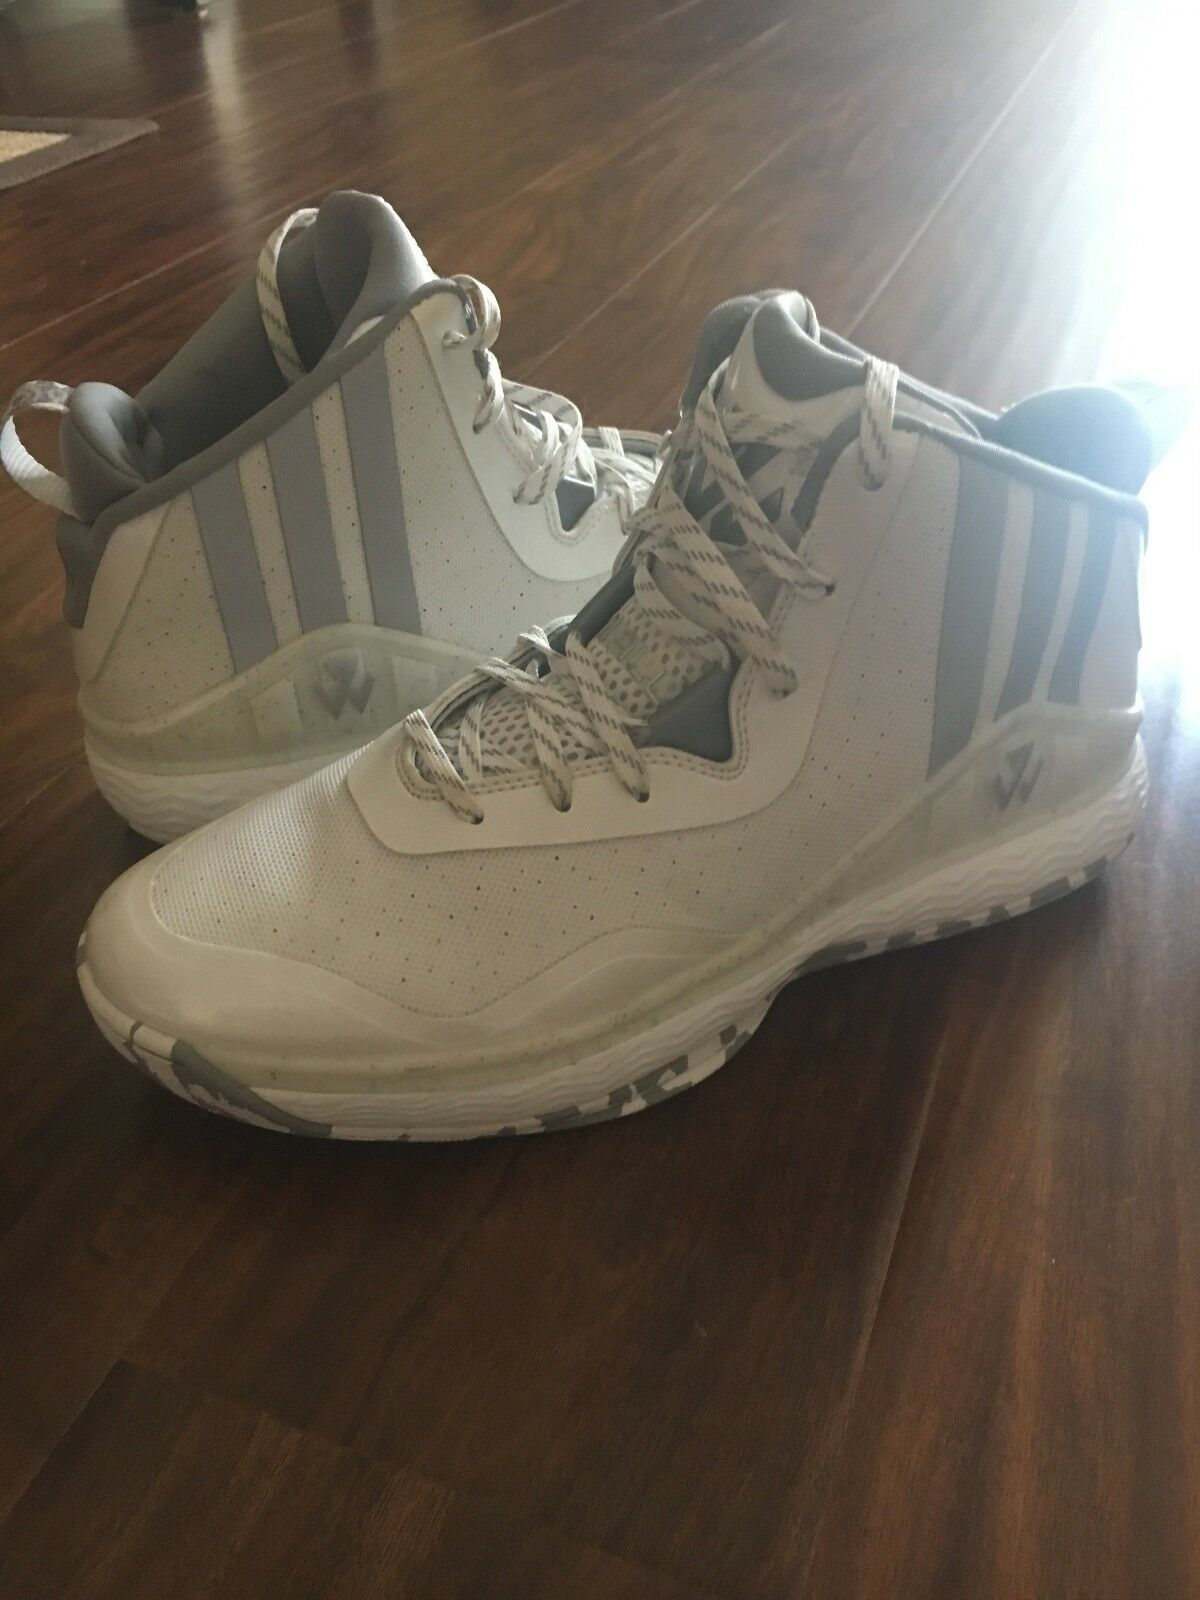 Men's white adidas j wall 1 basketball shoe size 8.5